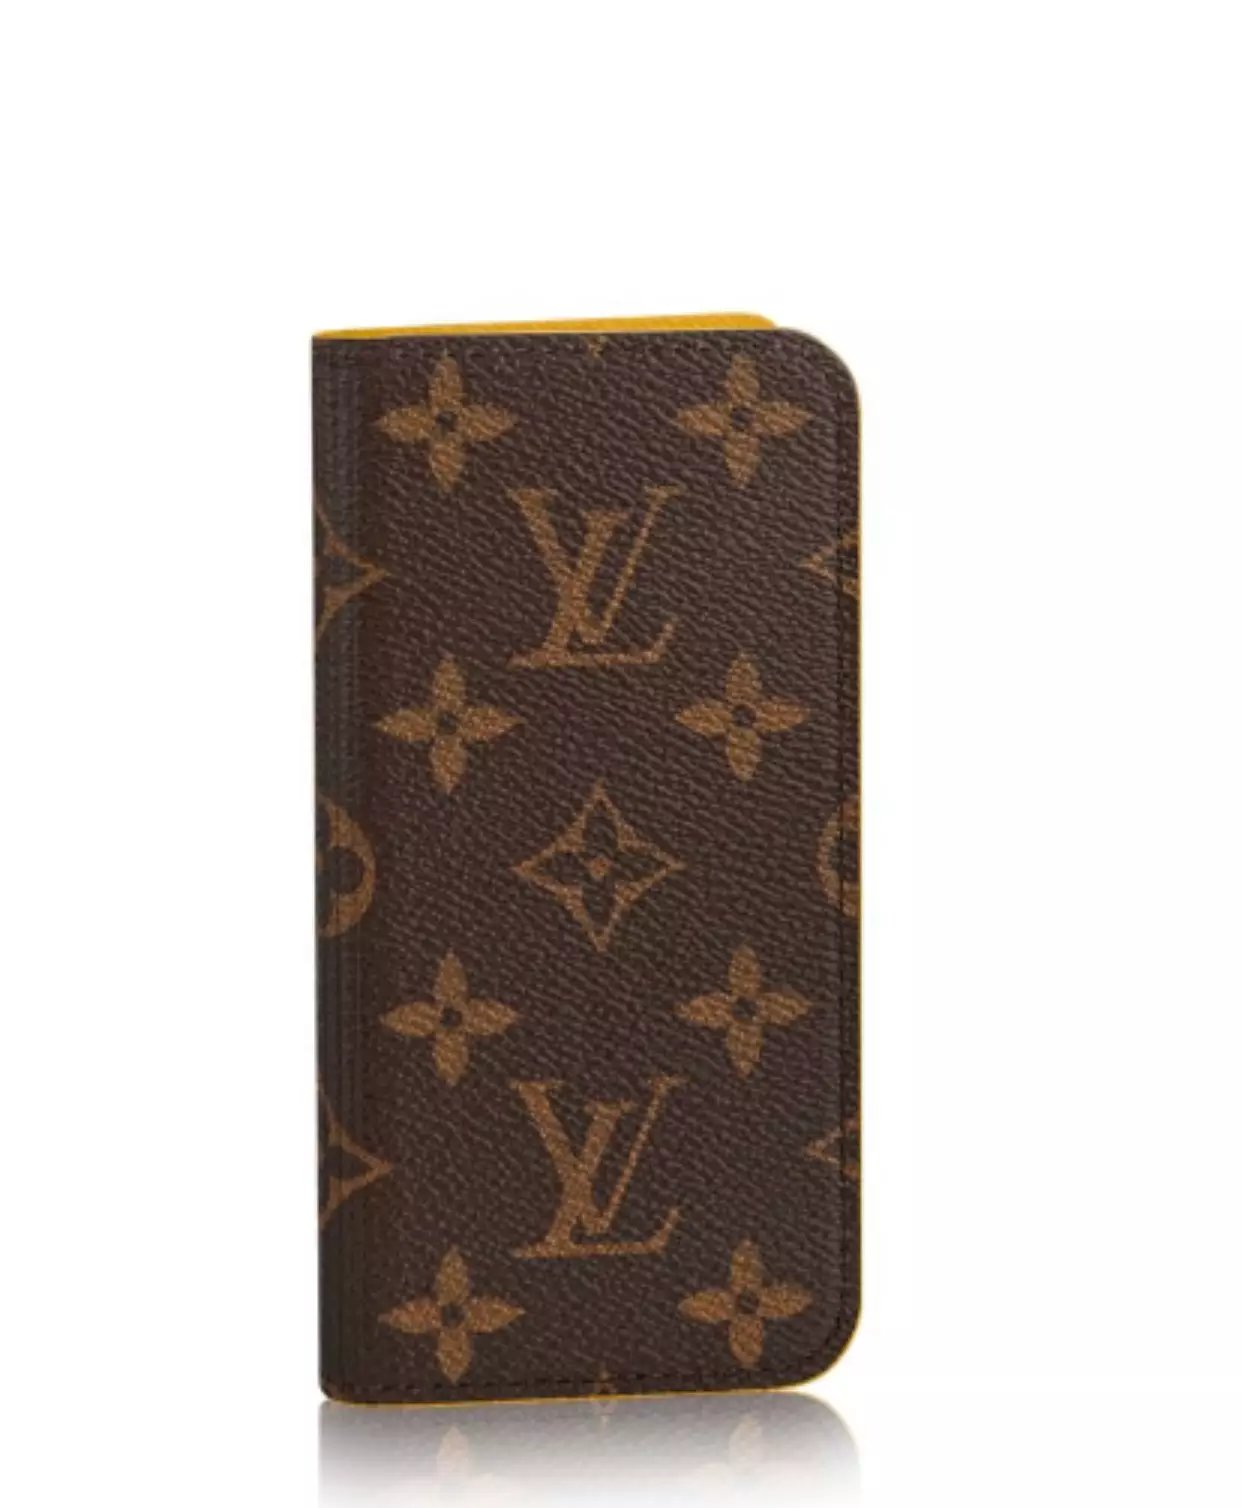 iphone silikonhülle iphone hülle foto Louis Vuitton iphone7 Plus hülle iphone 7 Plus hale iphone hülle gummi ipad hülle gestalten iphone ca7 bedrucken handy hüllen samsung galaxy s7 hüllen 7lbst gestalten iphone 7 Plus